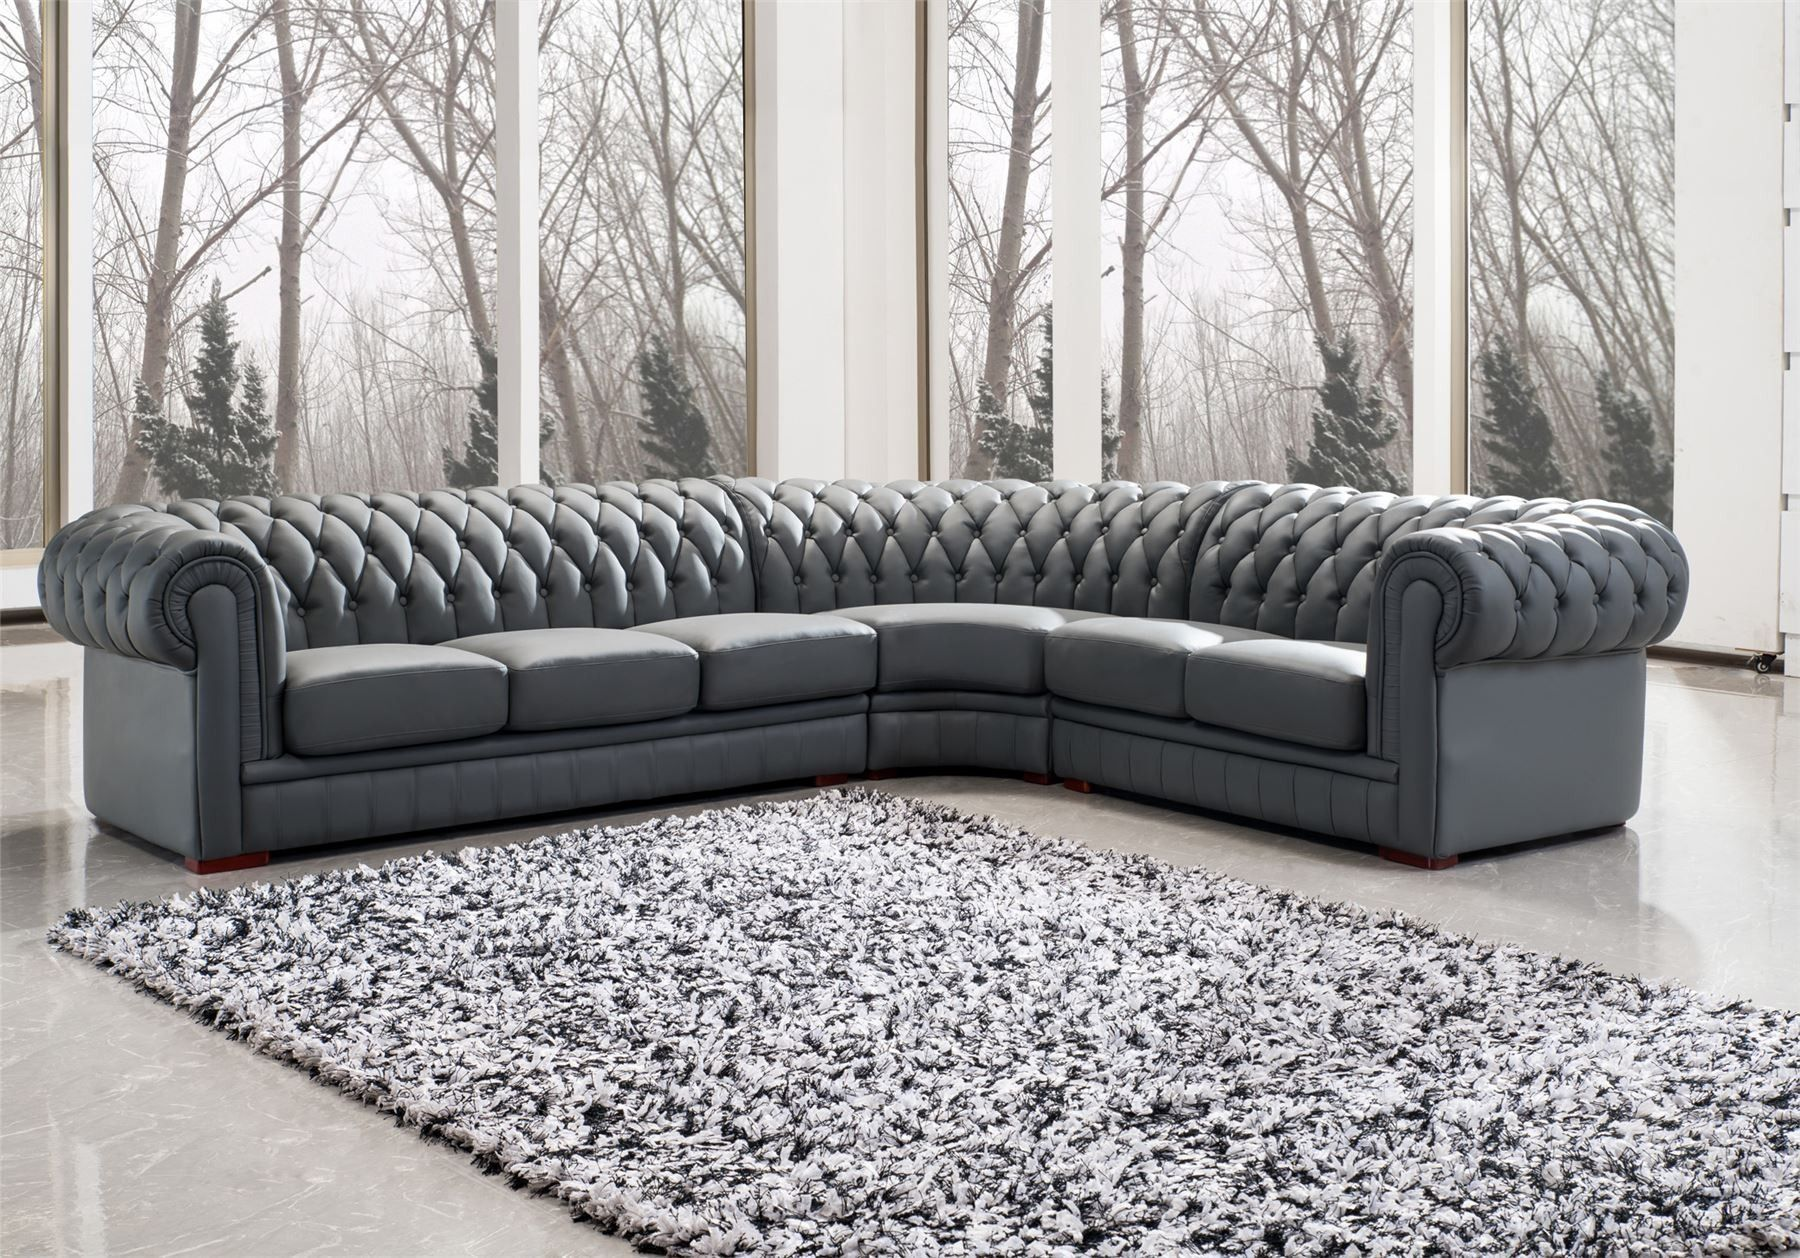 Luxe Modern 2 To 3 Seater Leather Chesterfield Sofa White Leather Sofas Modern Leather Sofa Sofa Design